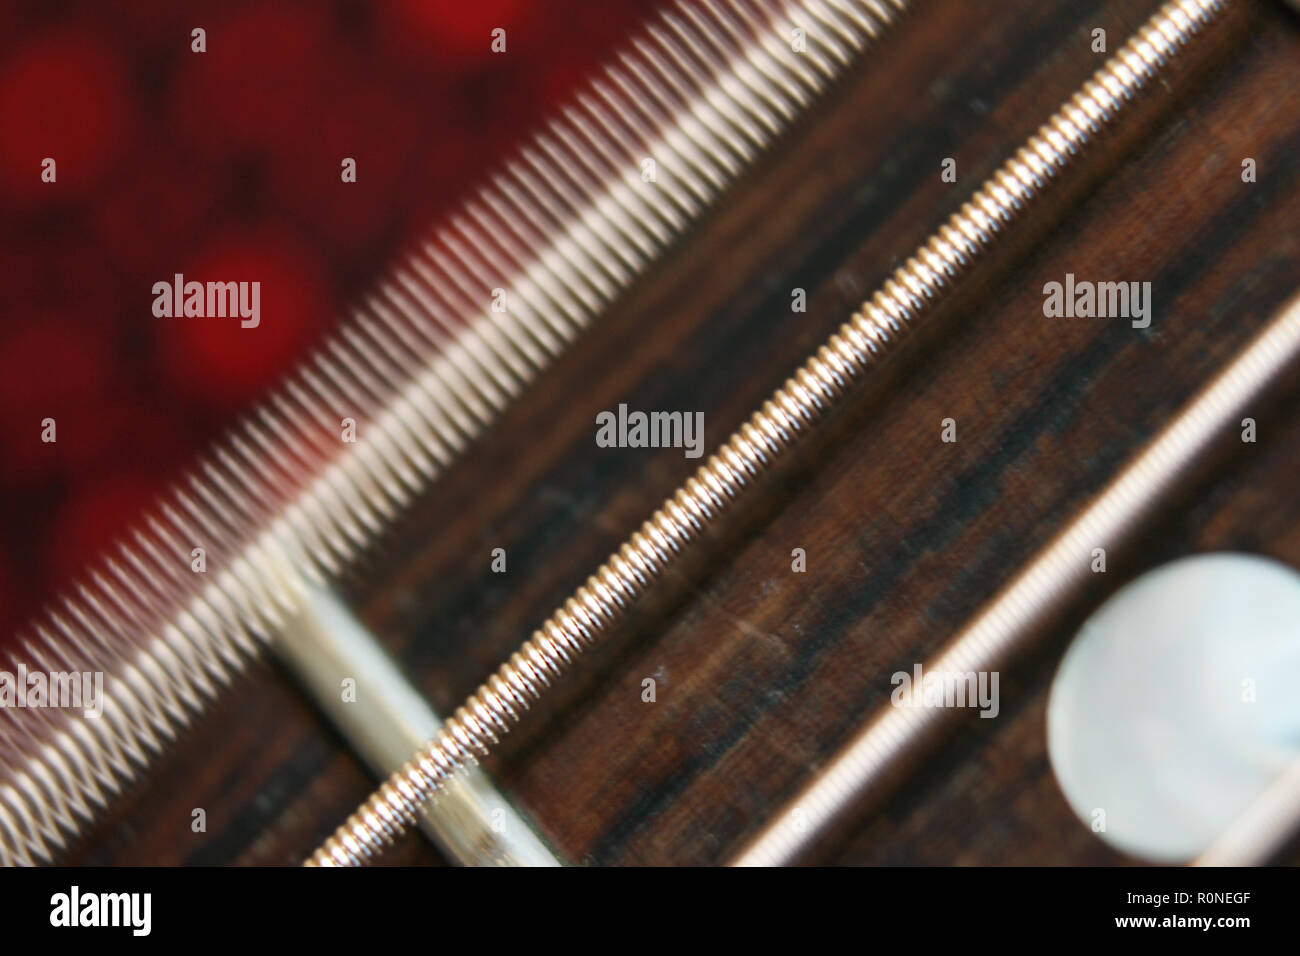 Acoustic guitar ivory fretboard with steel strings vibrating, close-up - Stock Image